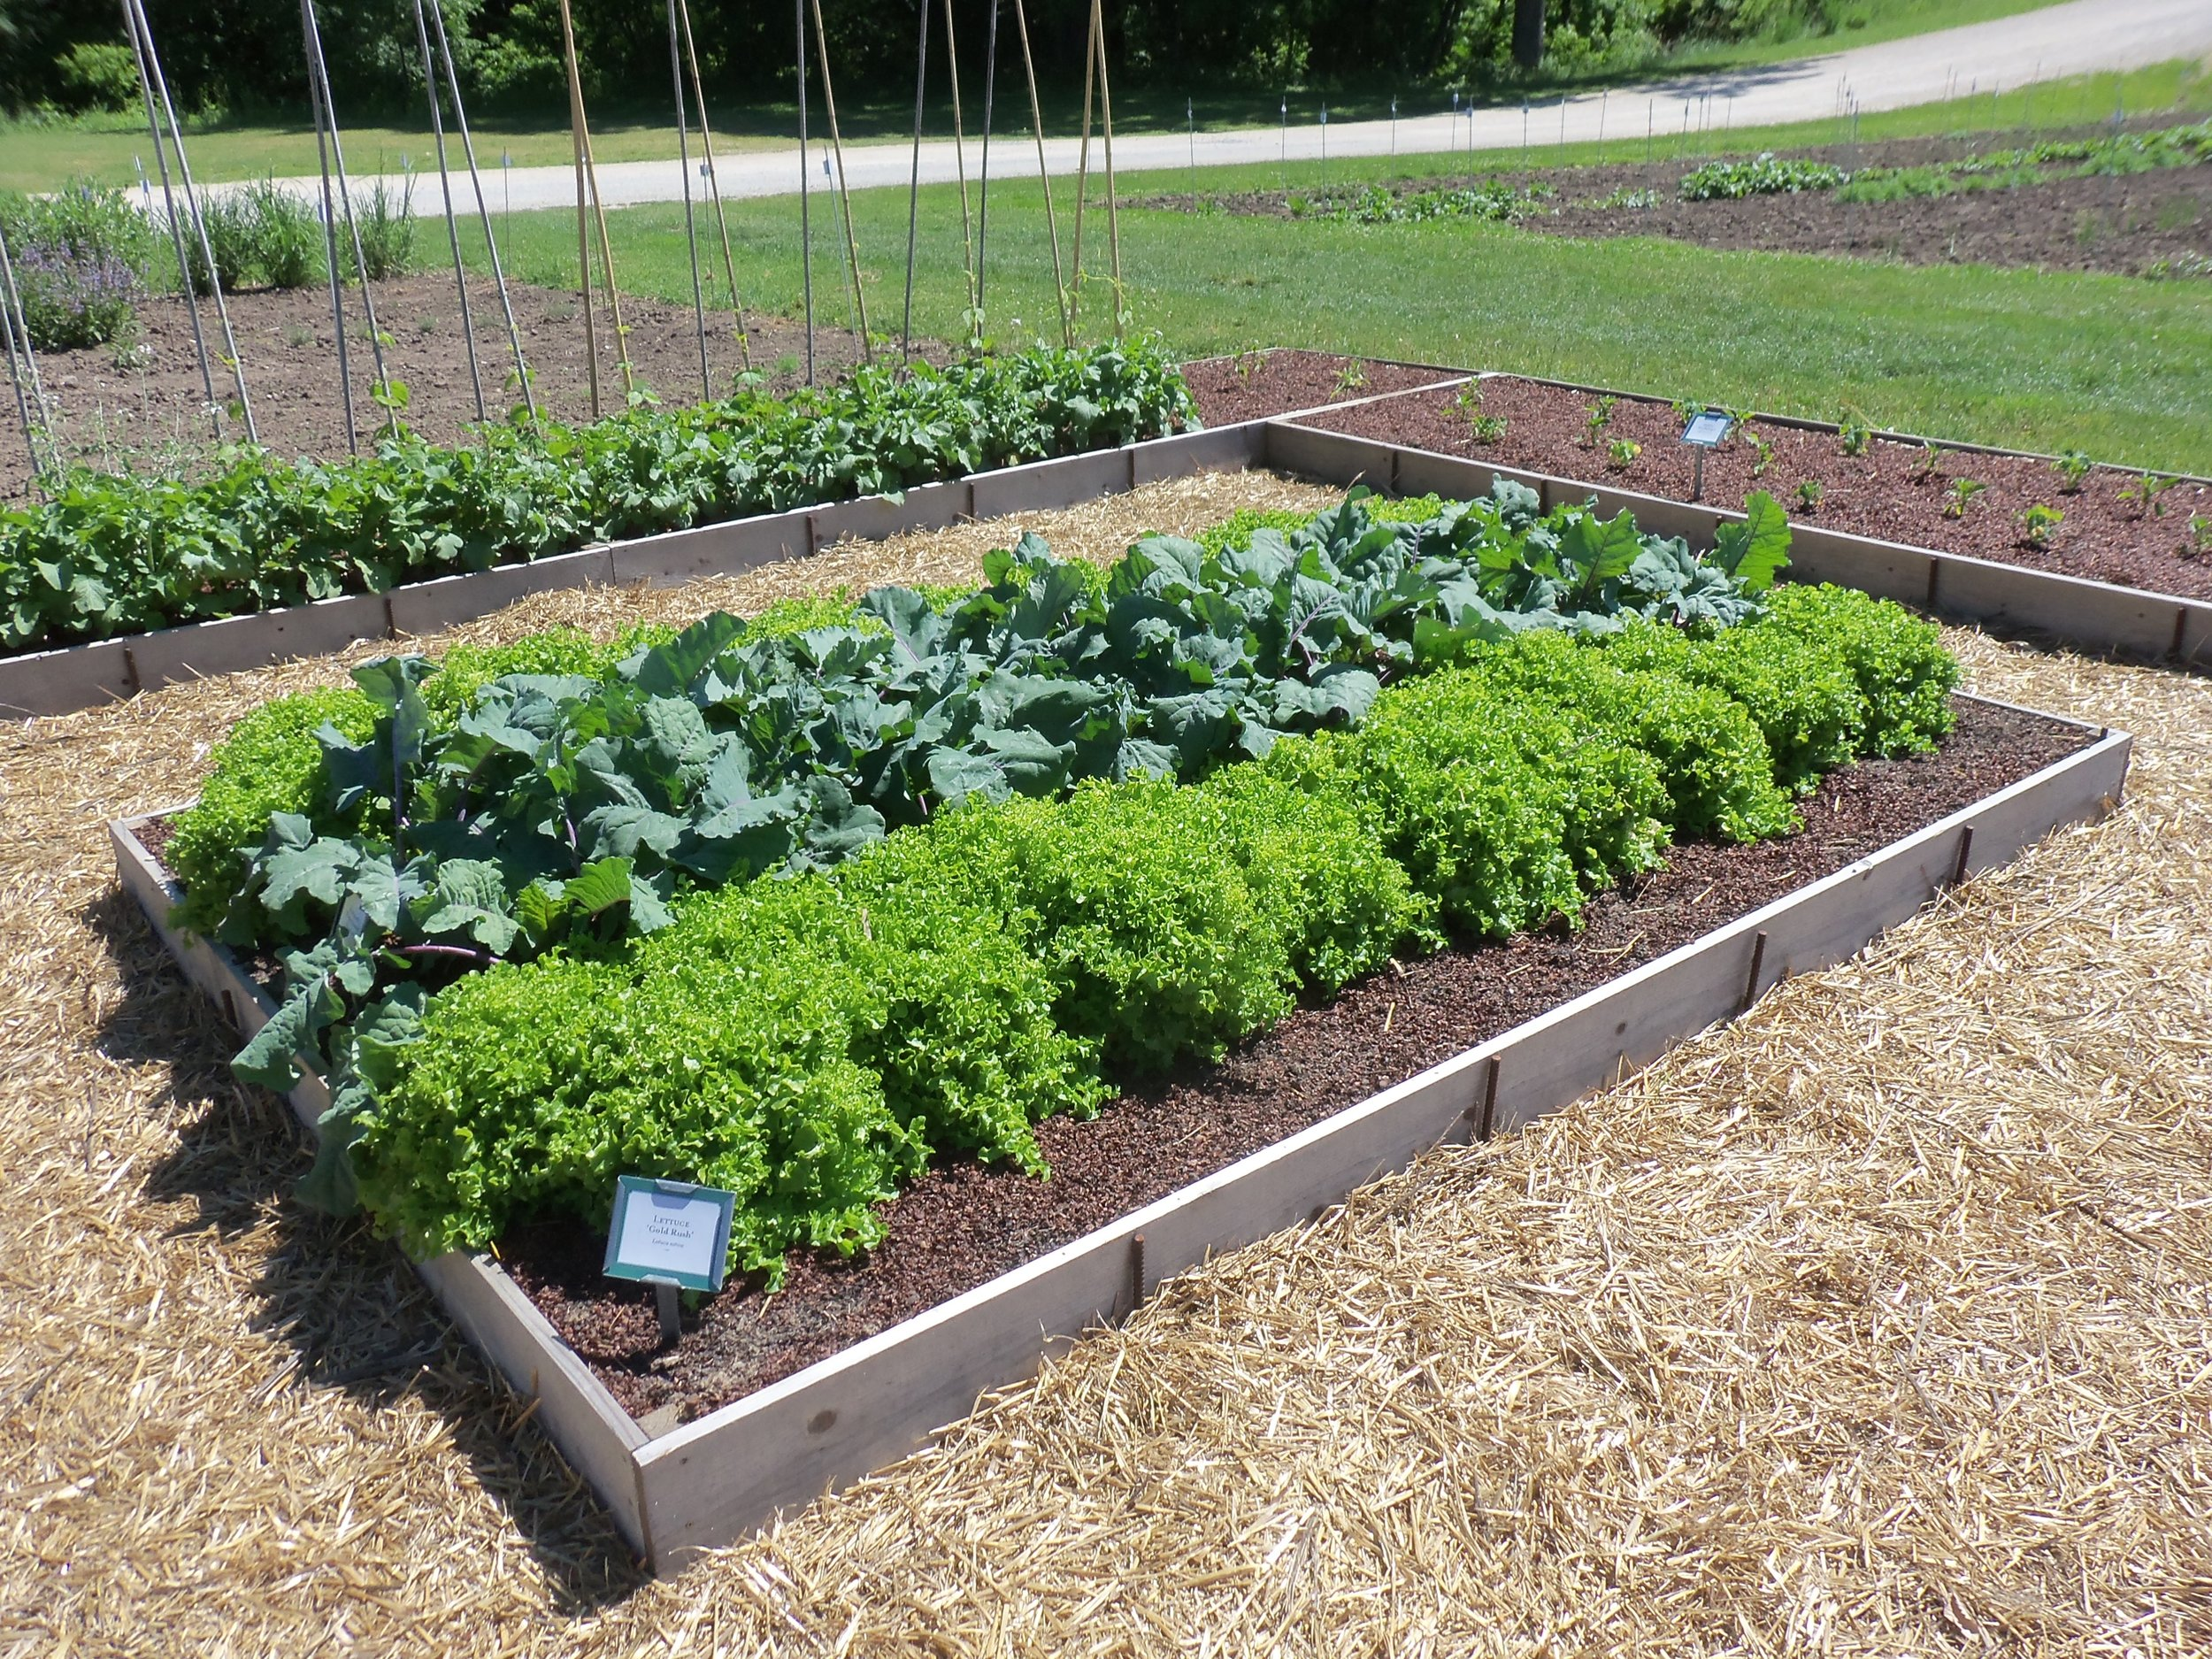 Like Carrots, Lettuce thrives in the cool temperatures of spring. direct sow Lettuce seeds as soon as you are able to work your garden soil.